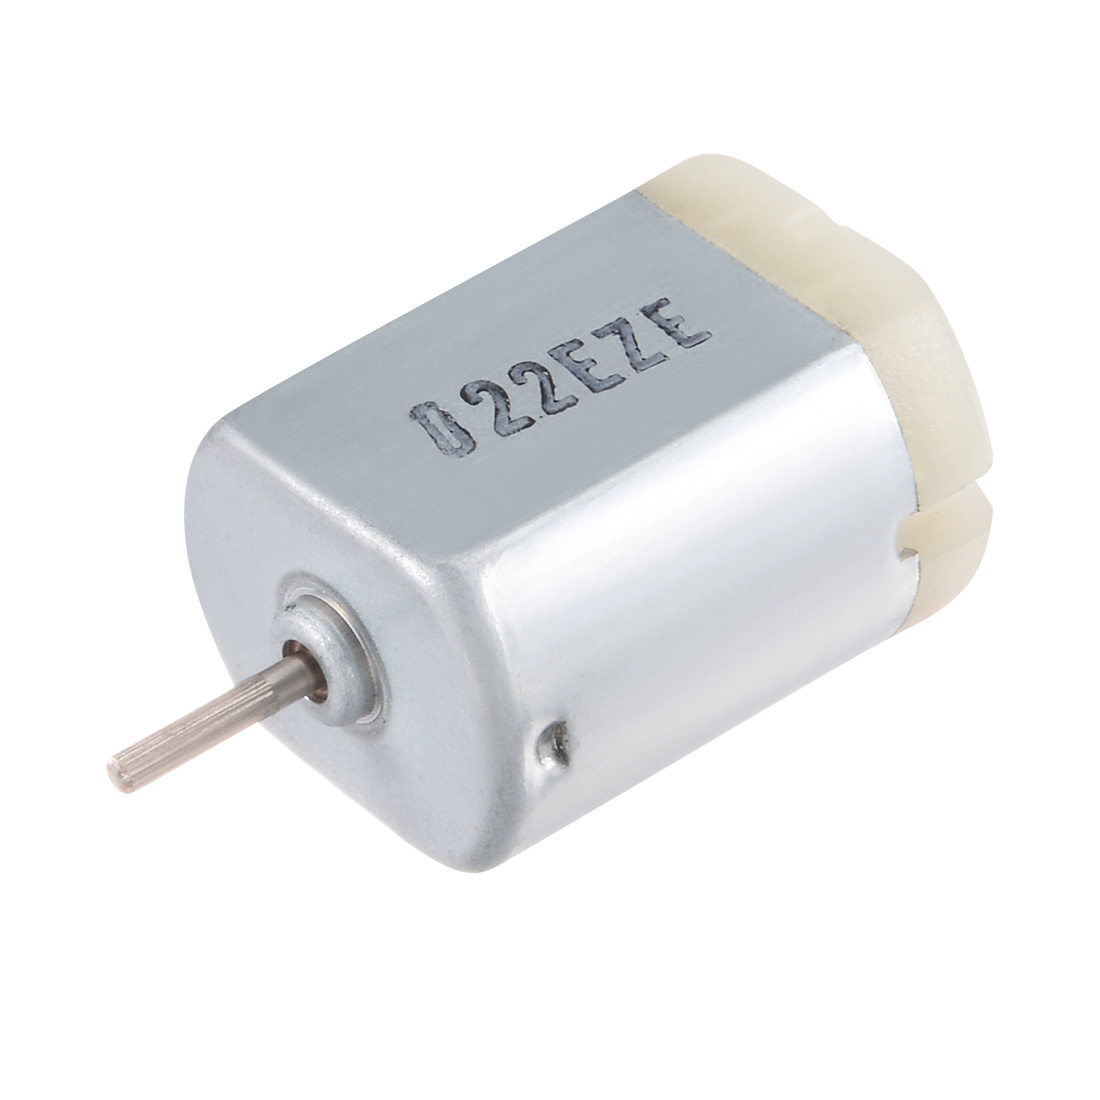 Micro Motor DC 12V 10400RPM High Speed Motor for DIY Toy Models Remote Control